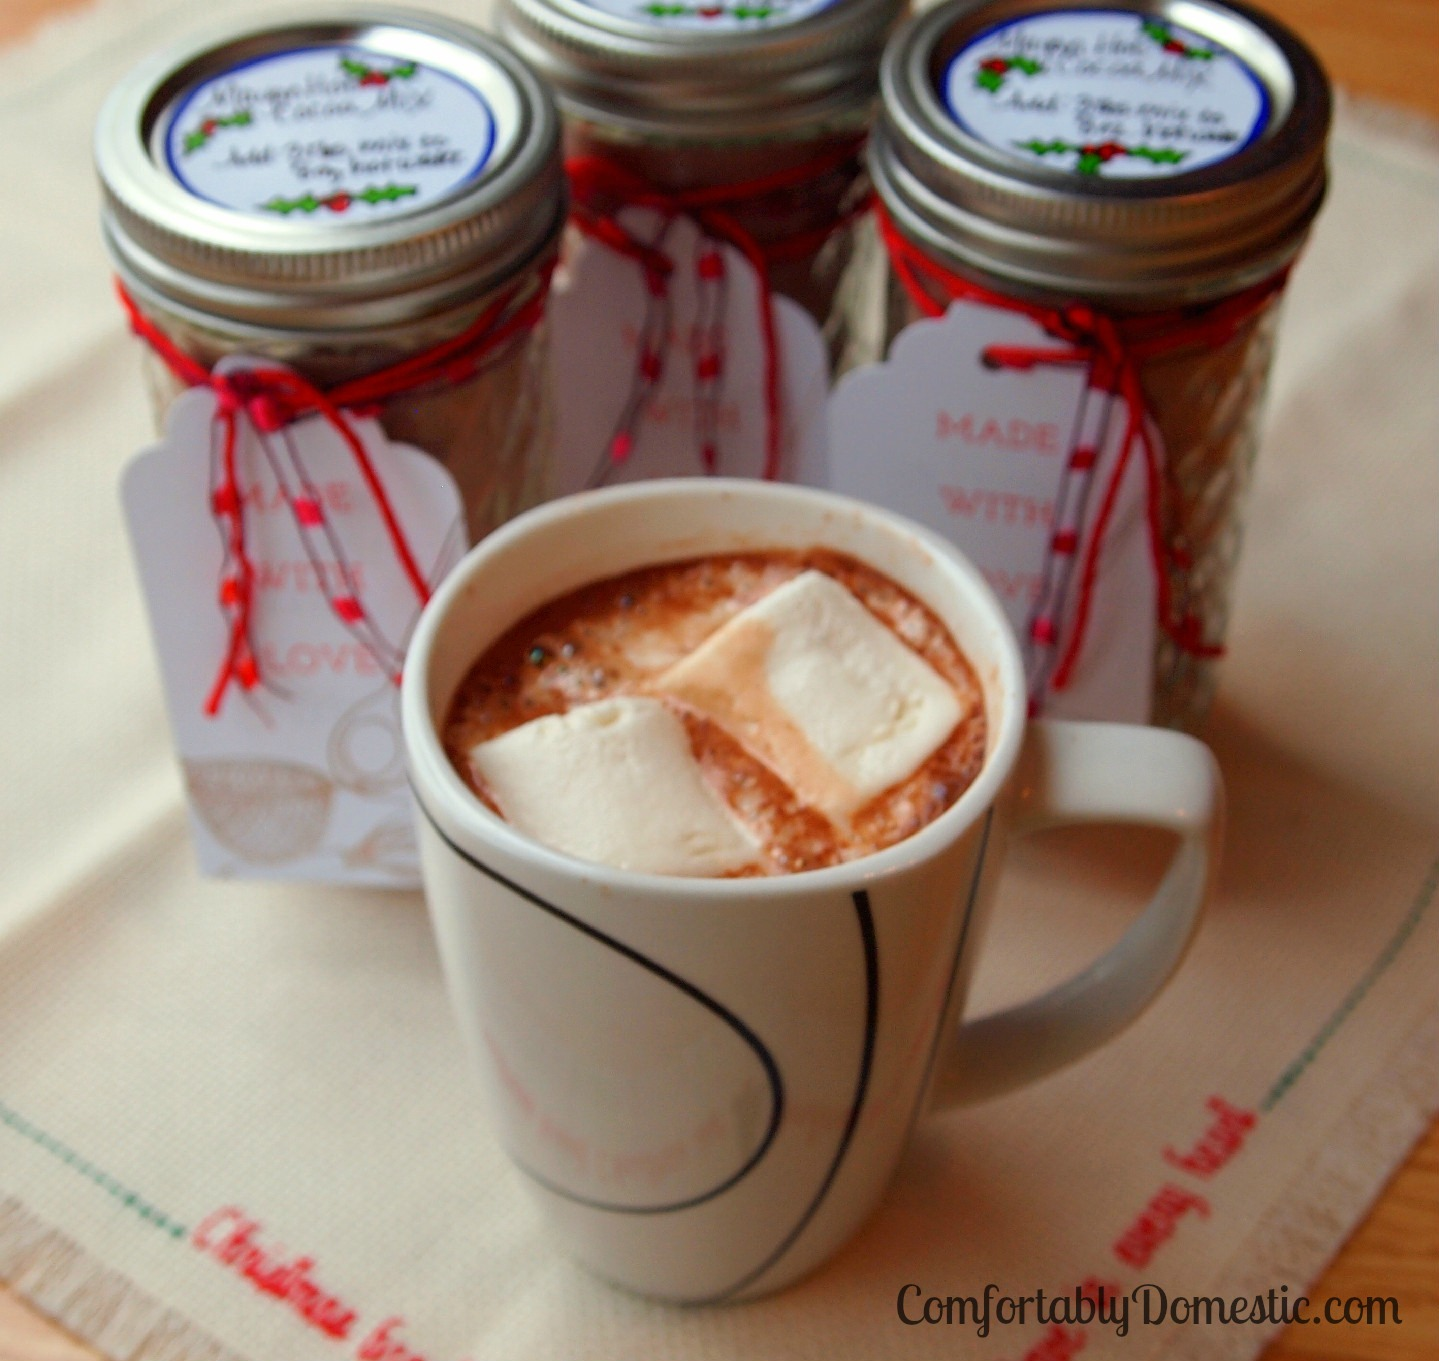 ... Minute Christmas Gifts: Mayan Hot Cocoa Mix | Comfortably Domestic